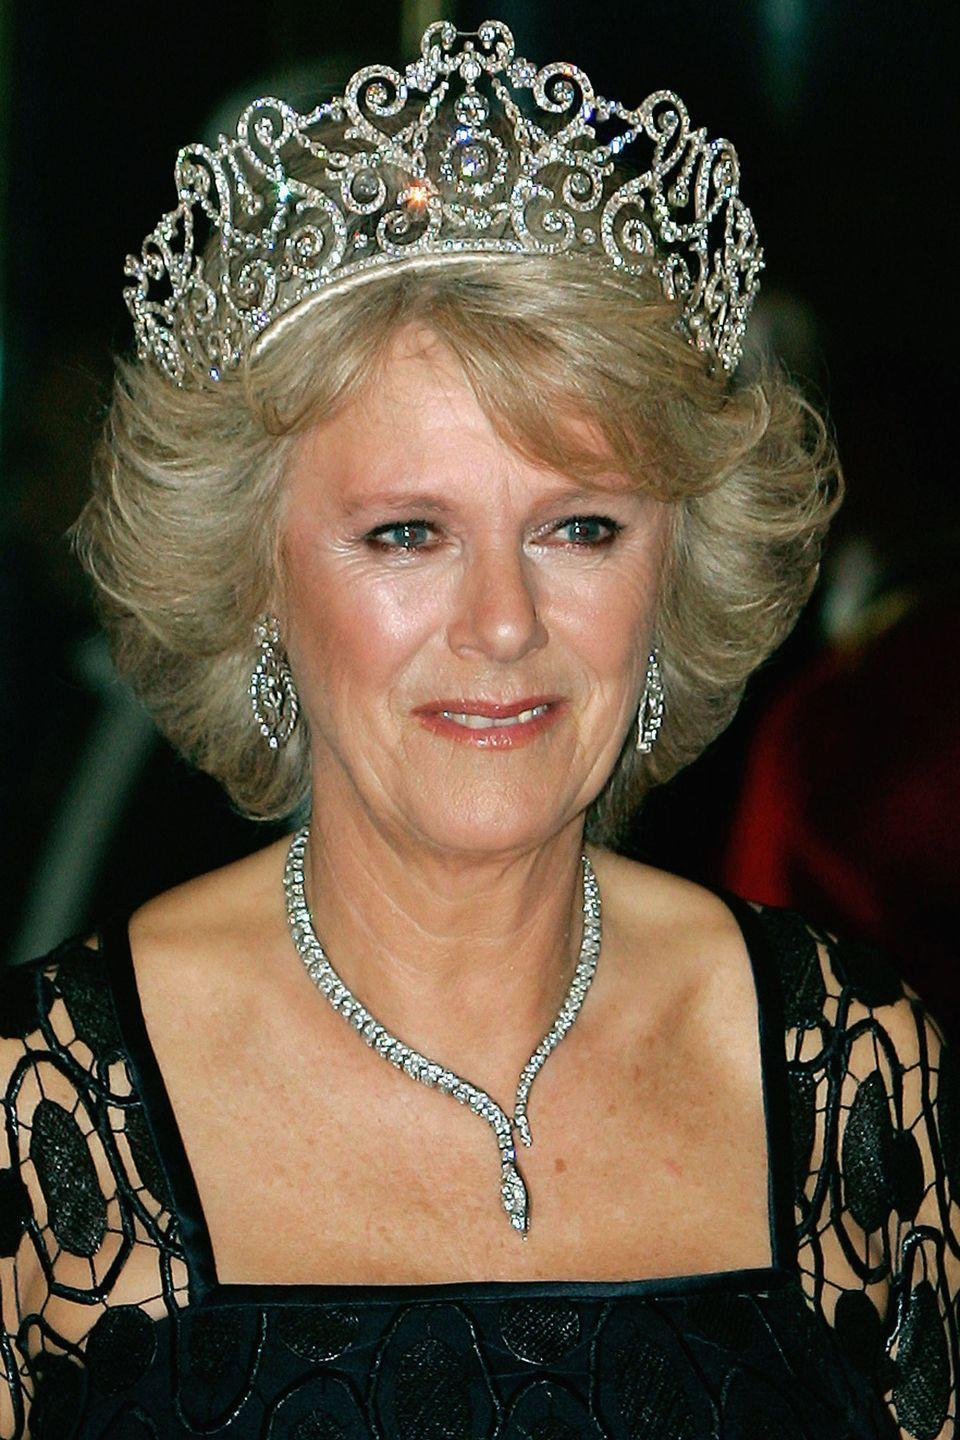 <p>The Delhi Durbar tiara is one of three on loan from the Queen to her daughter-in-law Camilla, Duchess of Cornwall. Made by Garrard, it was originally made for Queen Mary in 1911 for a celebration in Delhi to mark the coronation of King George V and Queen Mary as Emperor and Empress of India.</p>